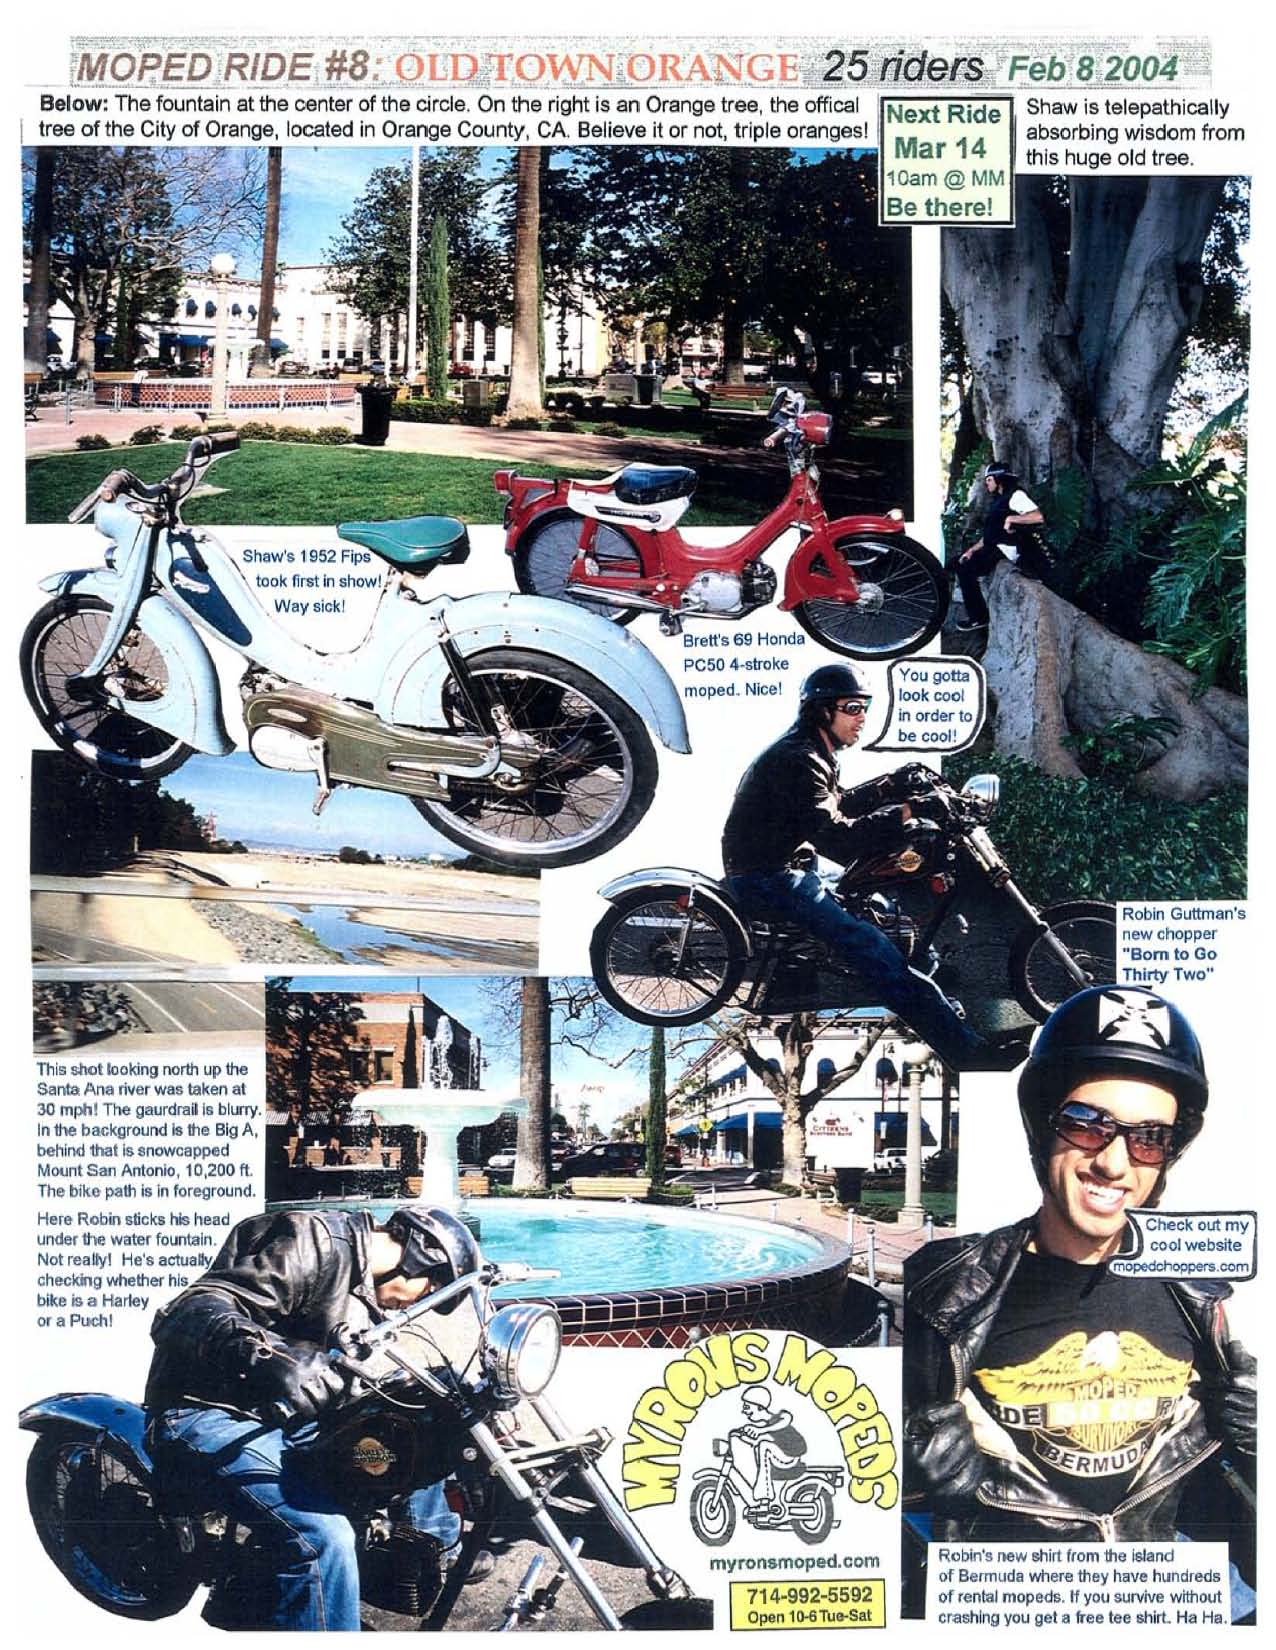 hight resolution of for your amusement all 100 monthly moped rides 2003 13 are shown in more myrons rides each ride 1 to 100 is two images a and b all 20 to 50 riders and